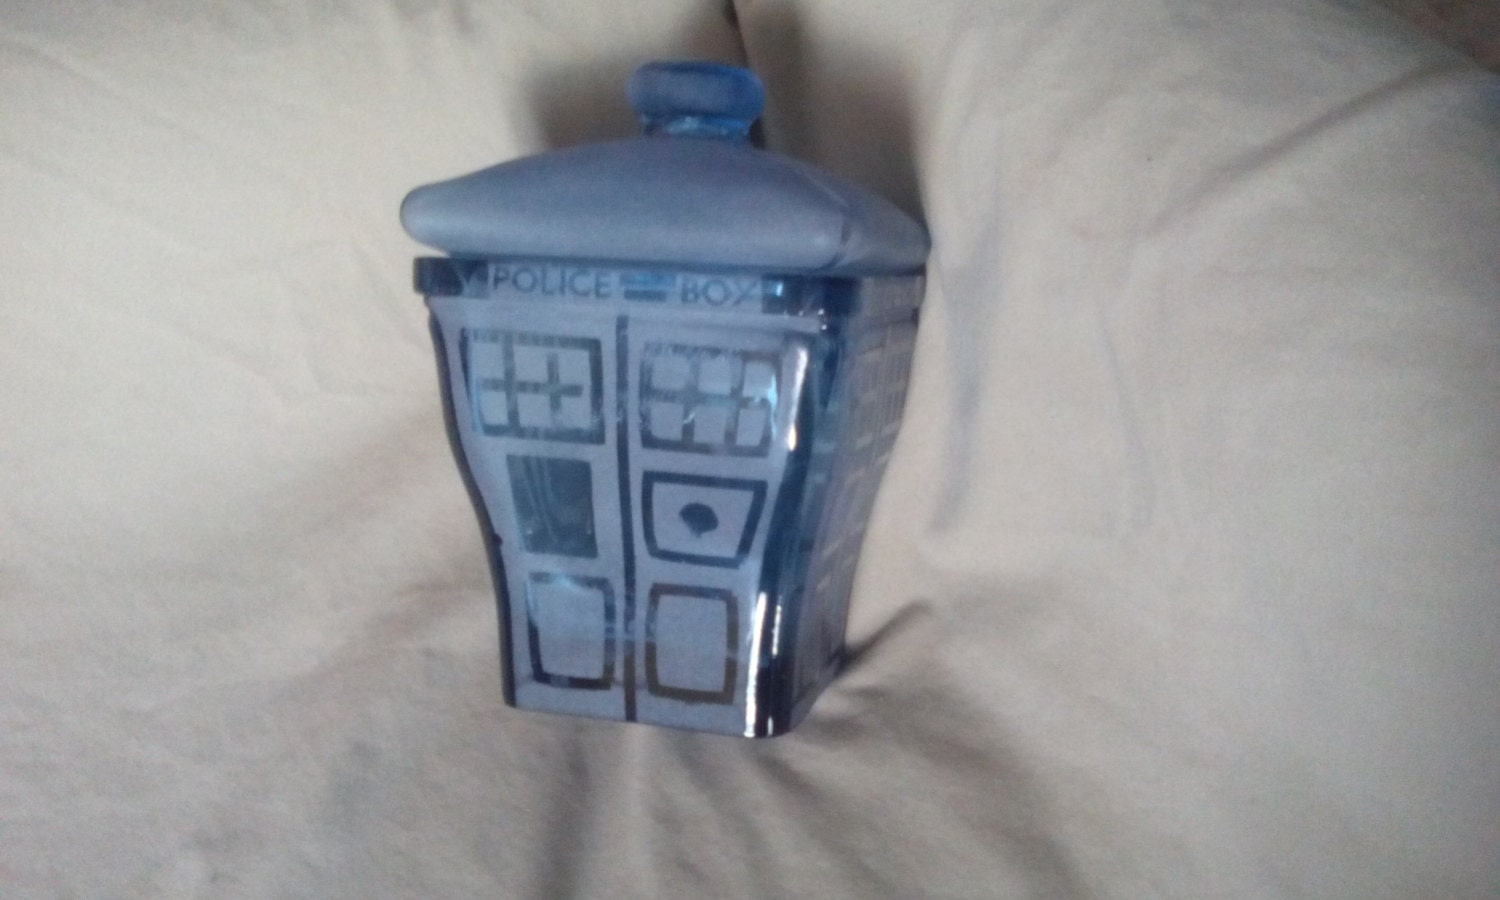 Tardis tim burton esk dr who cookie jar wibbly by whyteravenstudio - Tardis cookie jar ...